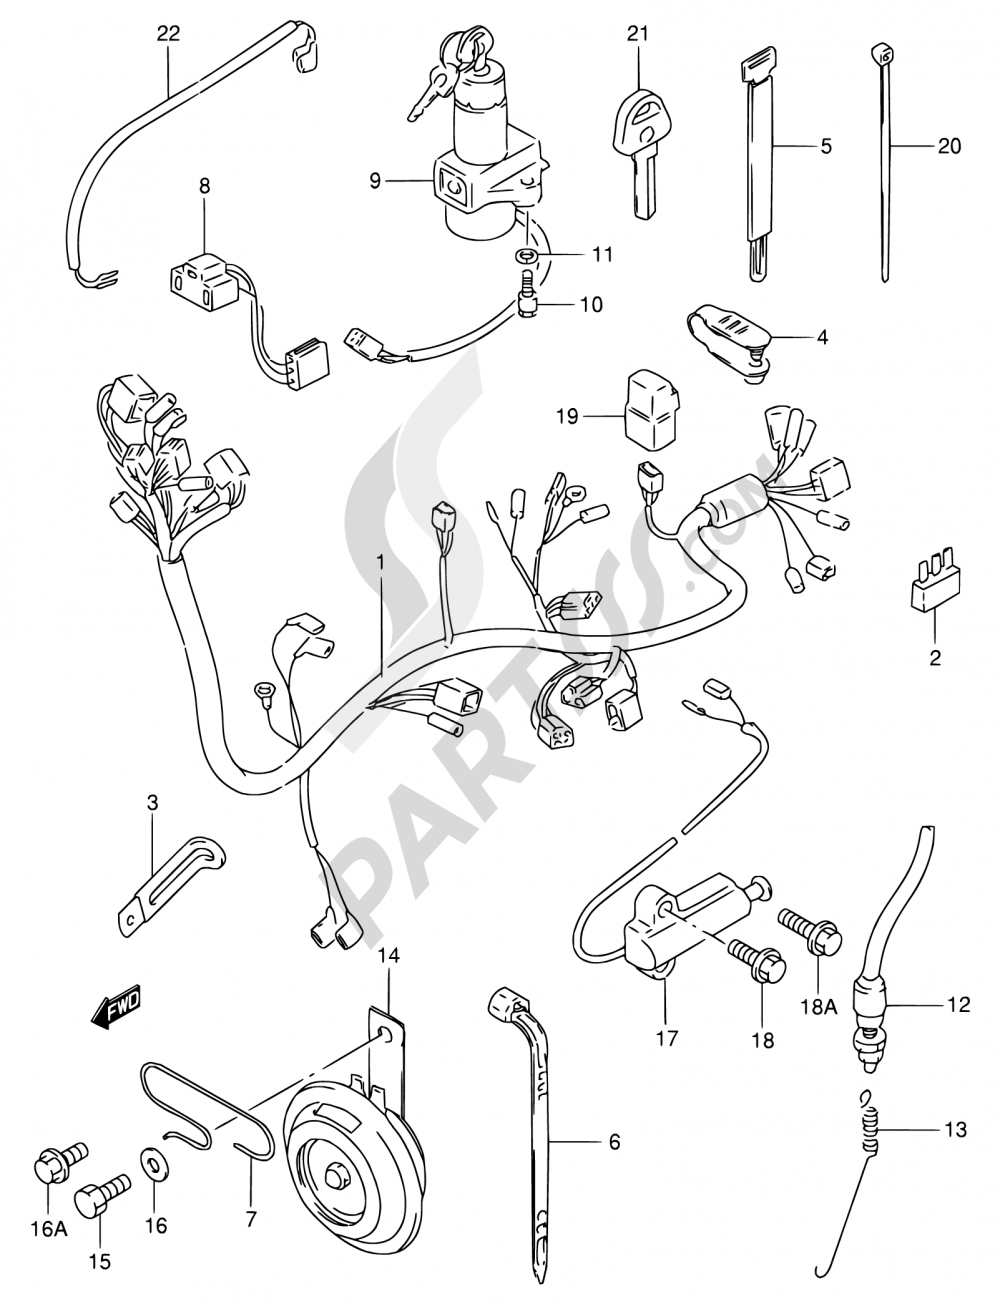 Gn250 Wiring Harness Electrical Diagrams Suzuki Gn 250 Diagram Engine 30 1985 1987 Toyota